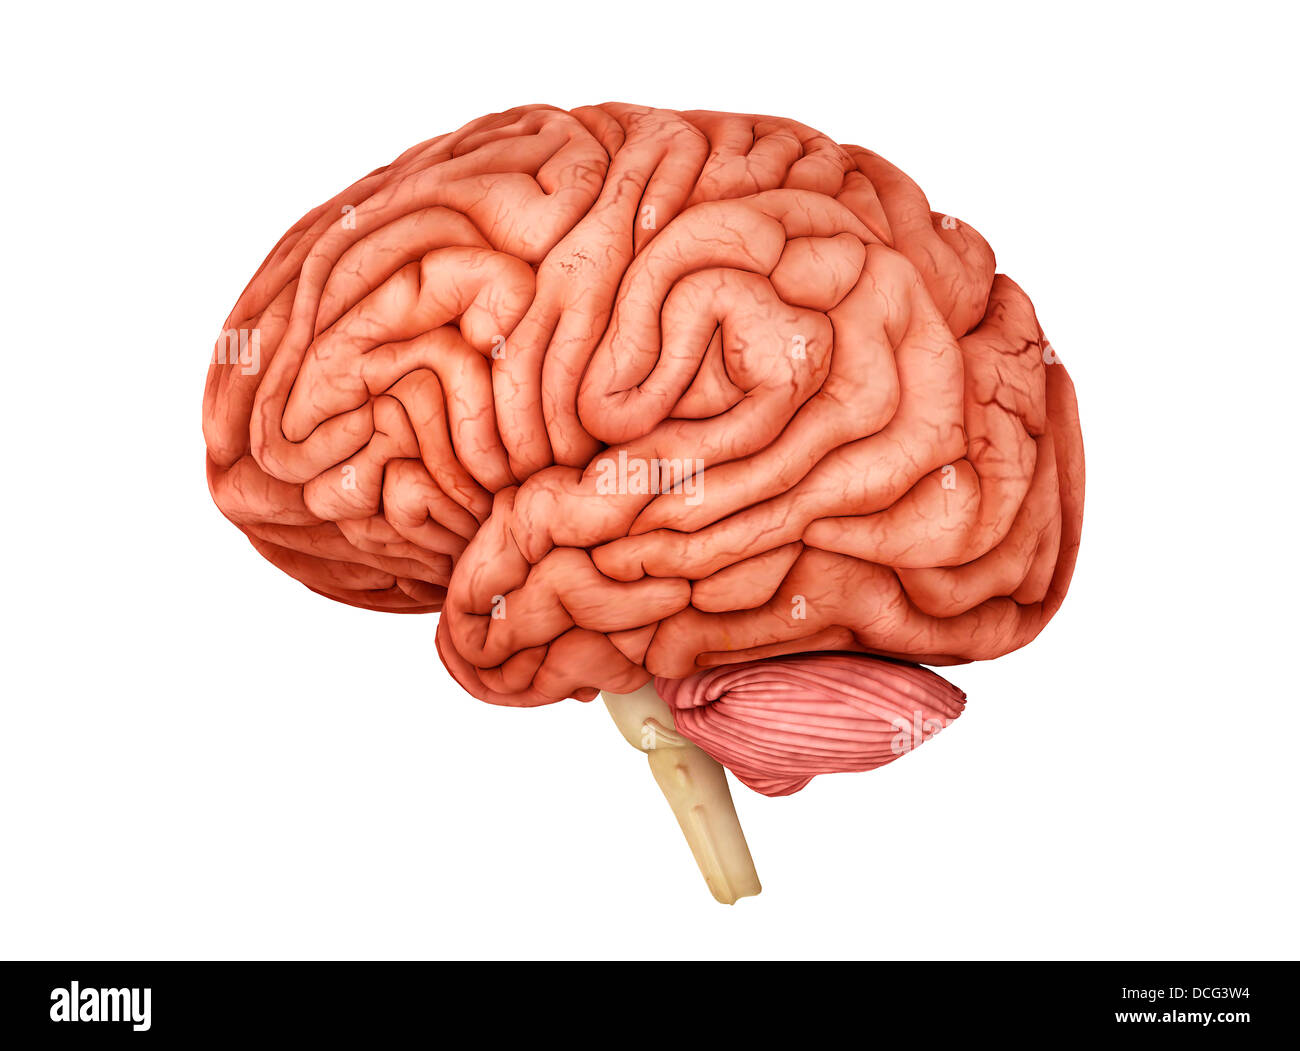 Anatomy of human brain, side view. - Stock Image